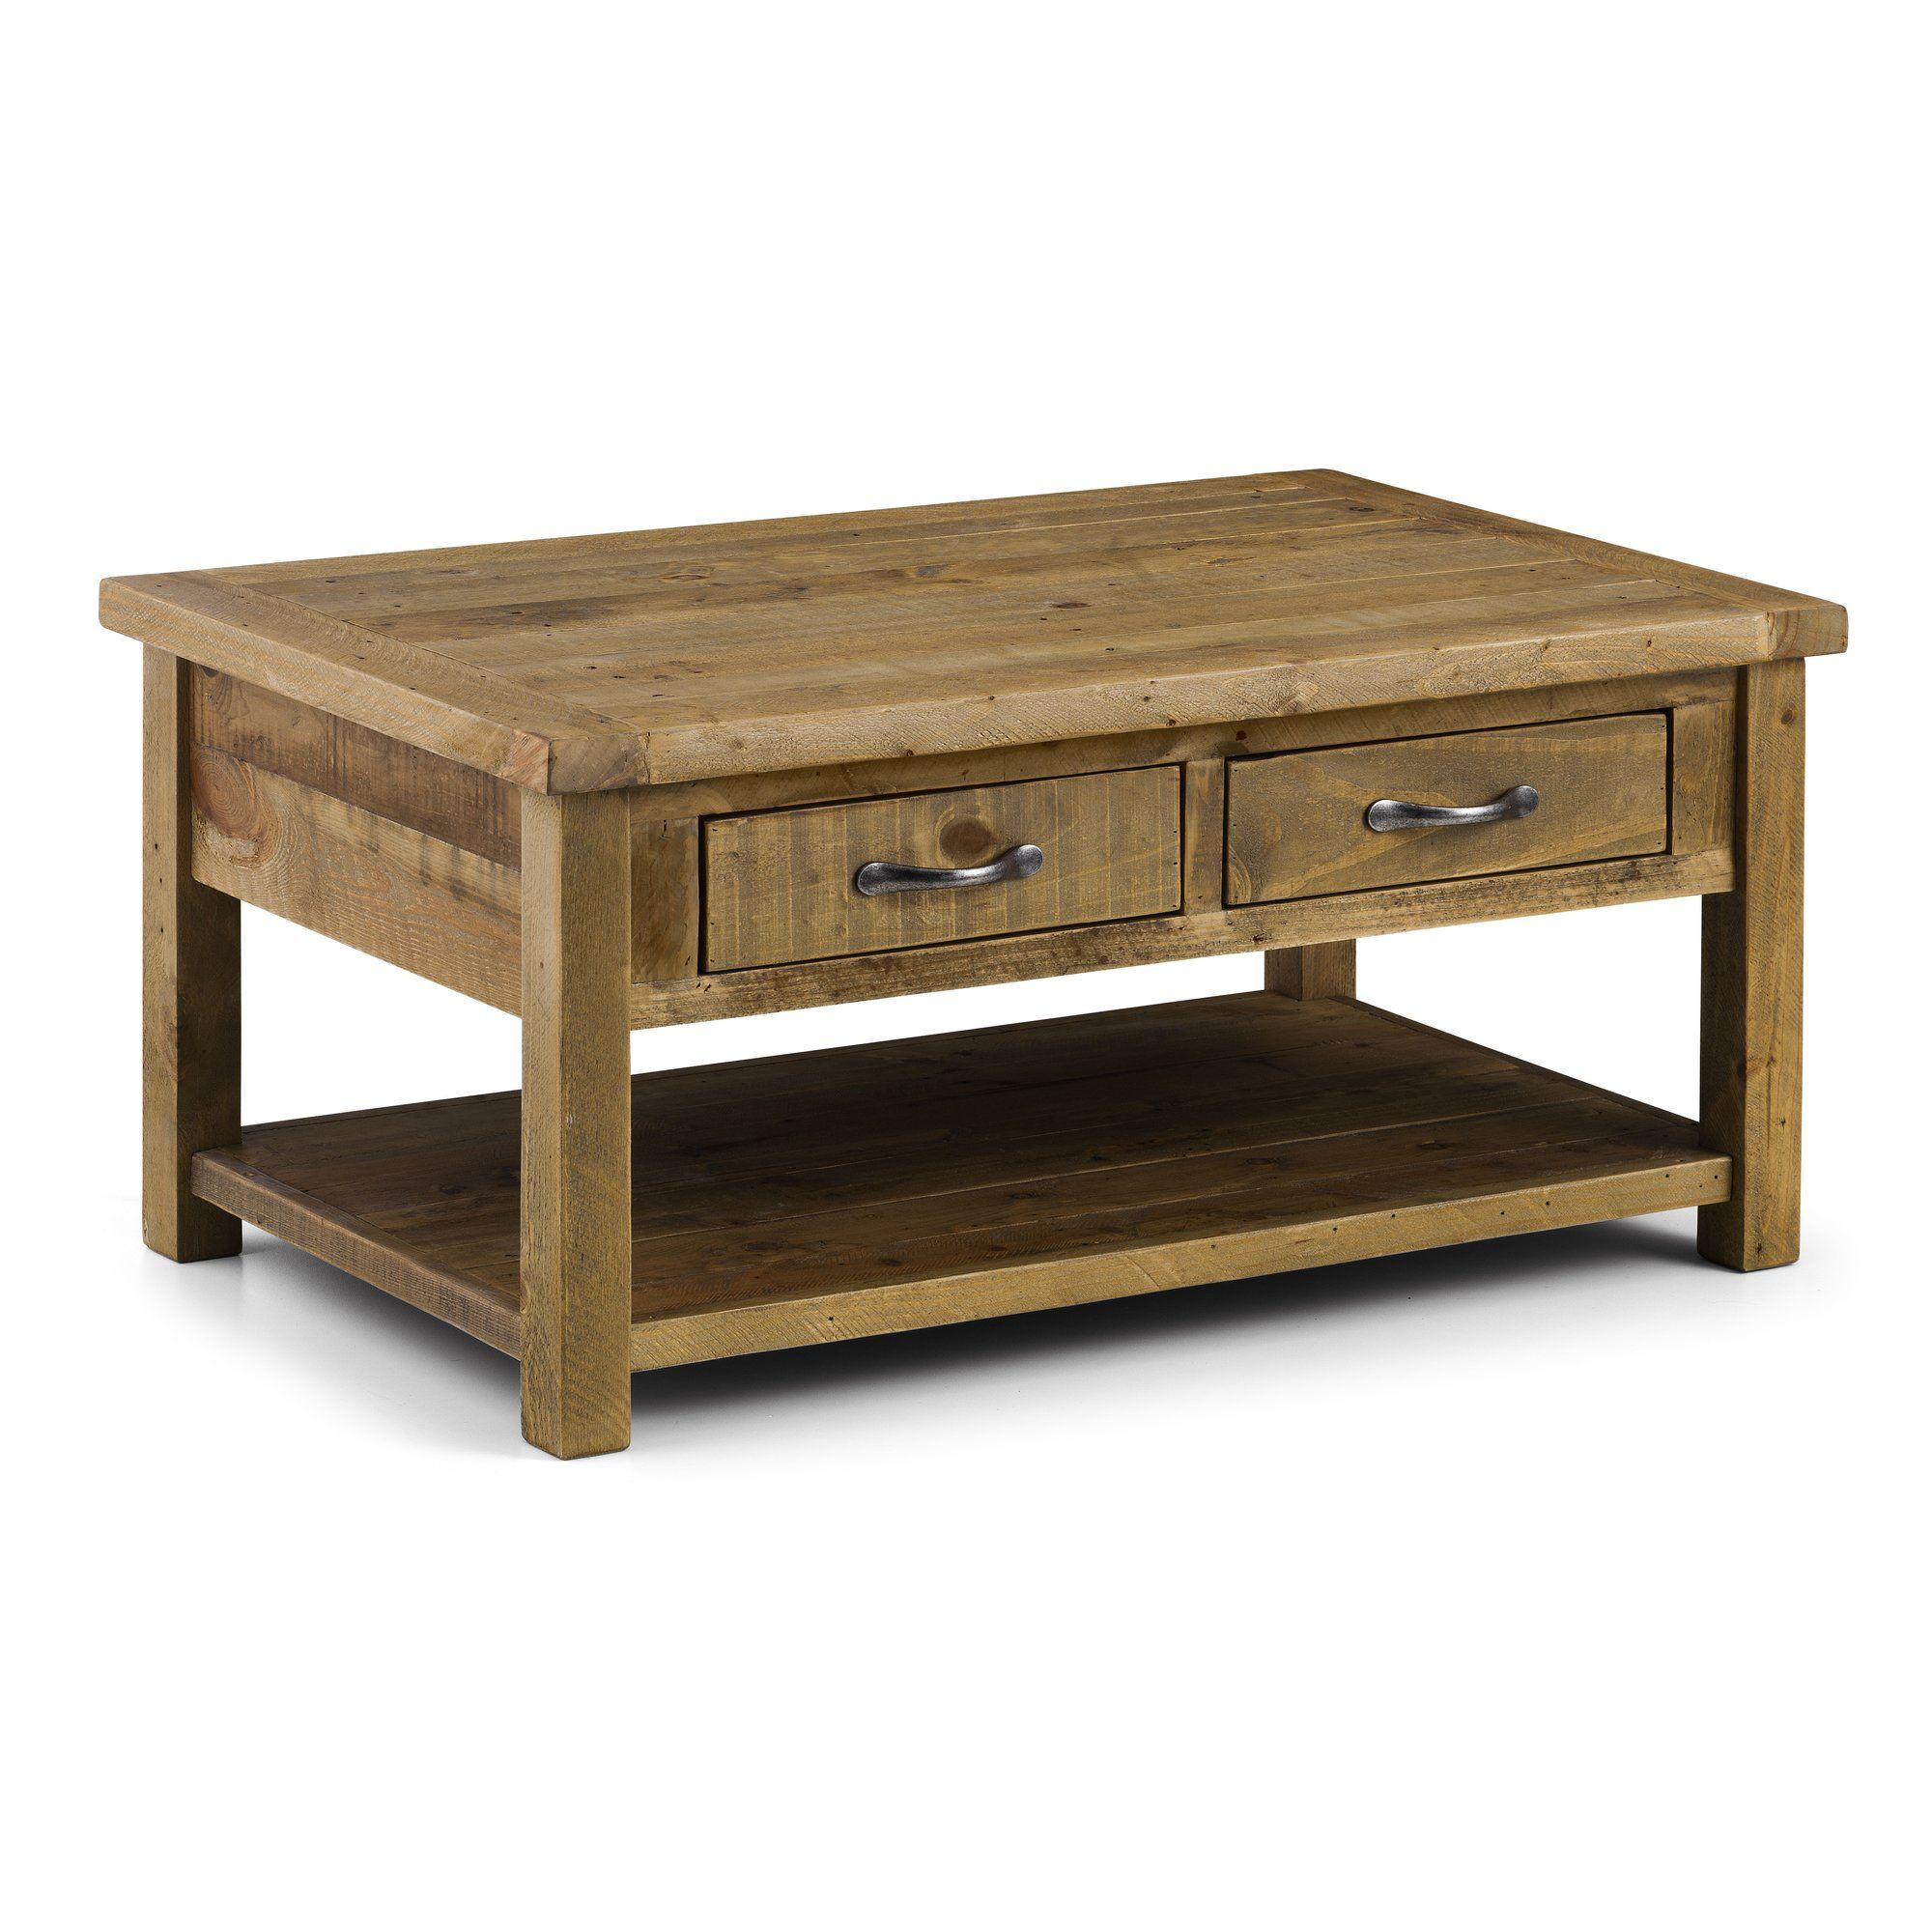 Lola Coffee Table Buy Coffee Table Coffee Tables Uk Types Of